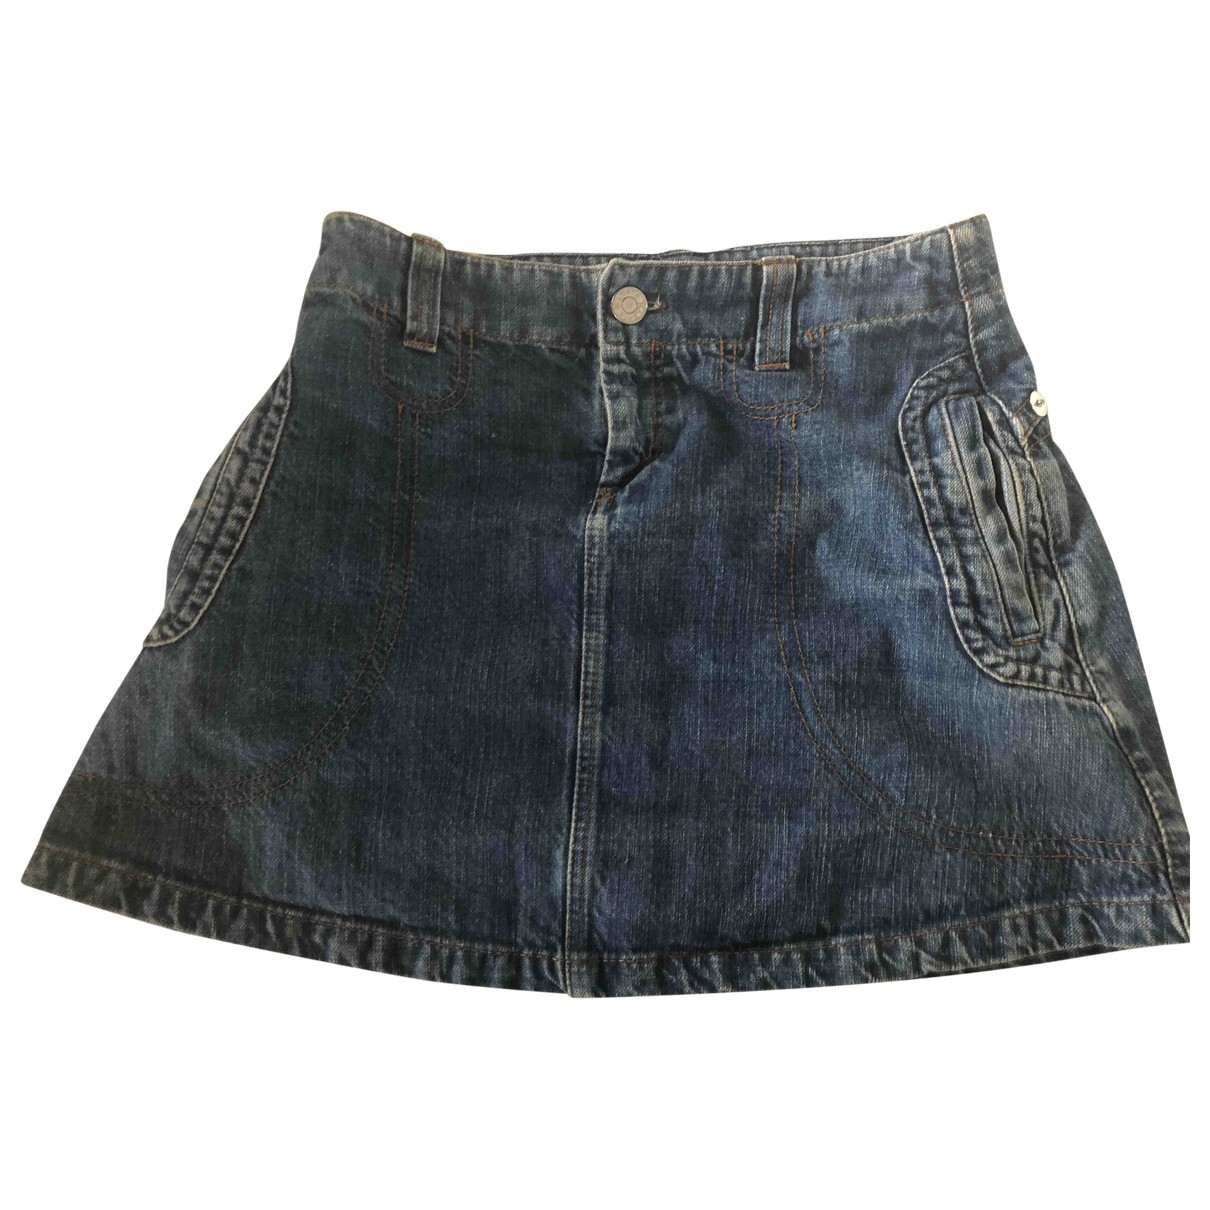 Max & Co \N Blue Denim - Jeans skirt for Women 40 FR